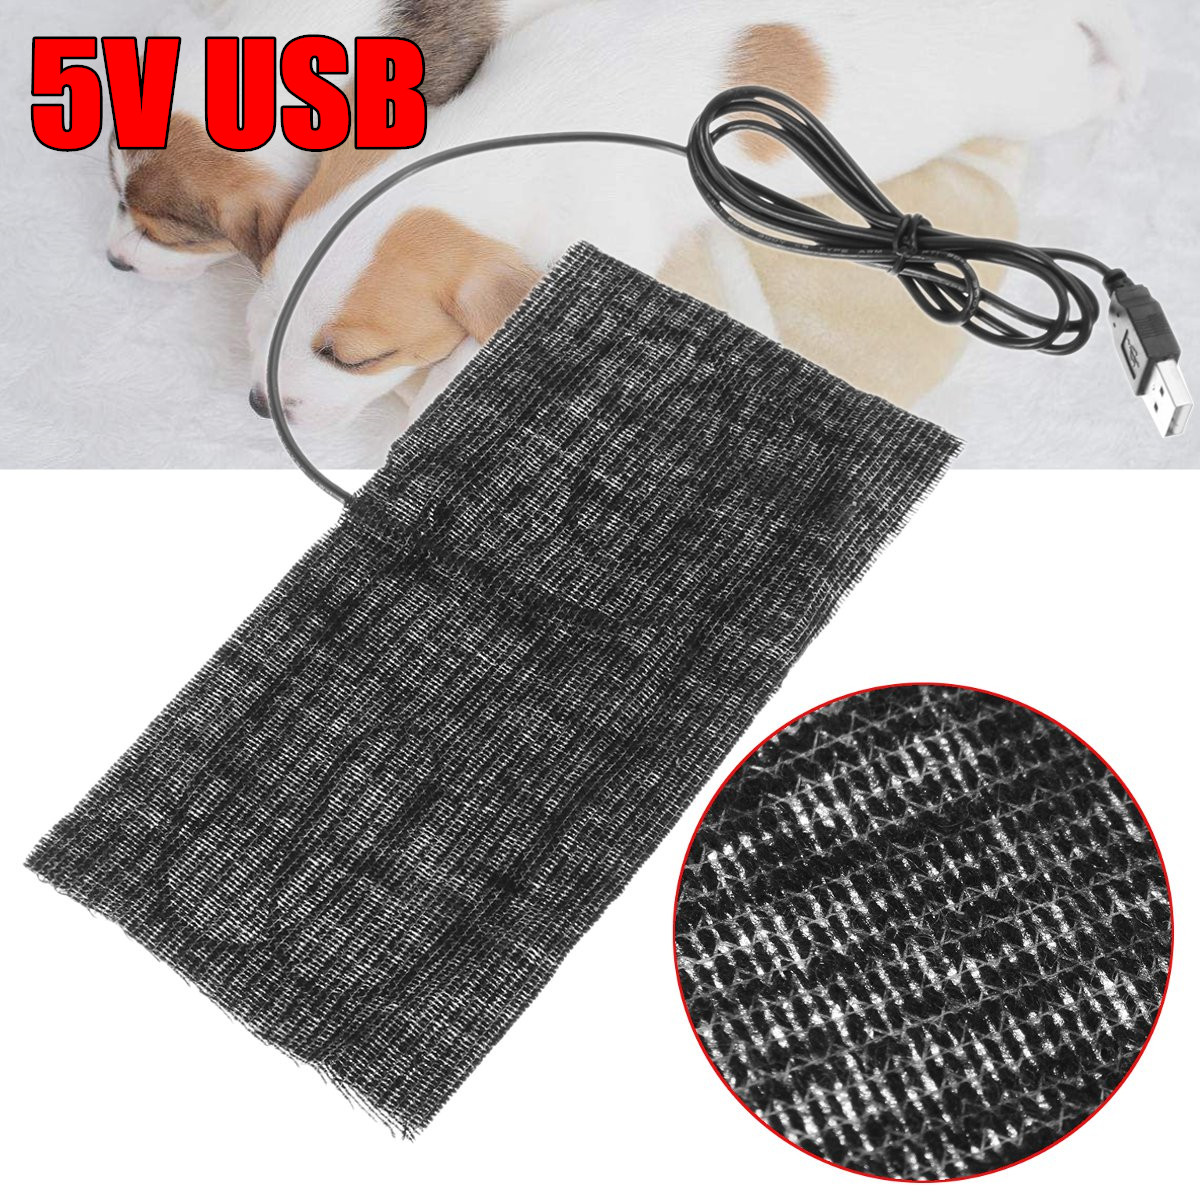 BSAID 5V Electric Cloth Heater Pad, Thermal Heating Pad Element Insoles Pet Warmer For Winter, Heated Pads Unisex Portable USB 5v usb electric clothes heater sheet adjustable temperature winter heated gloves for cloth pet heating pad waist warmer tablet